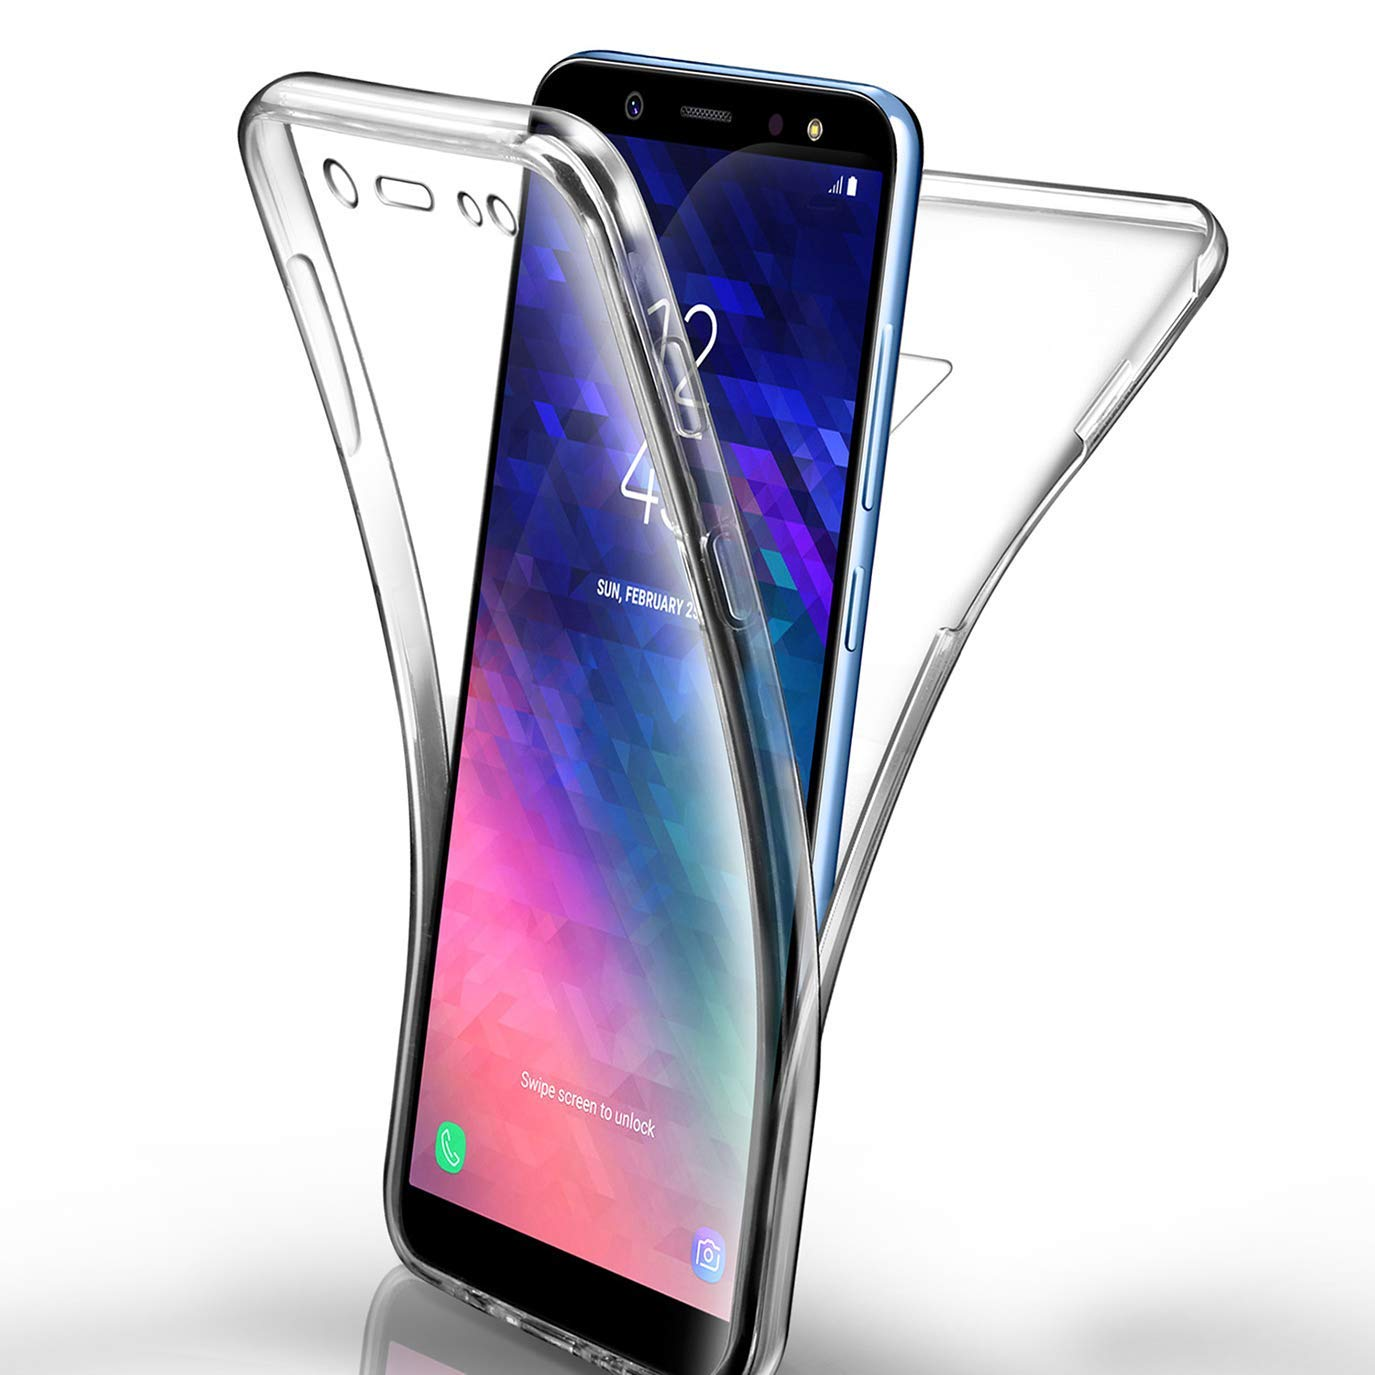 360 Degree Case For Samsung Galaxy S10 Plus Lite A6 A8 Plus A750 2018 A3 A5 A7 2015/16/17 Note 8 9 Soft Clear Full Body Cover